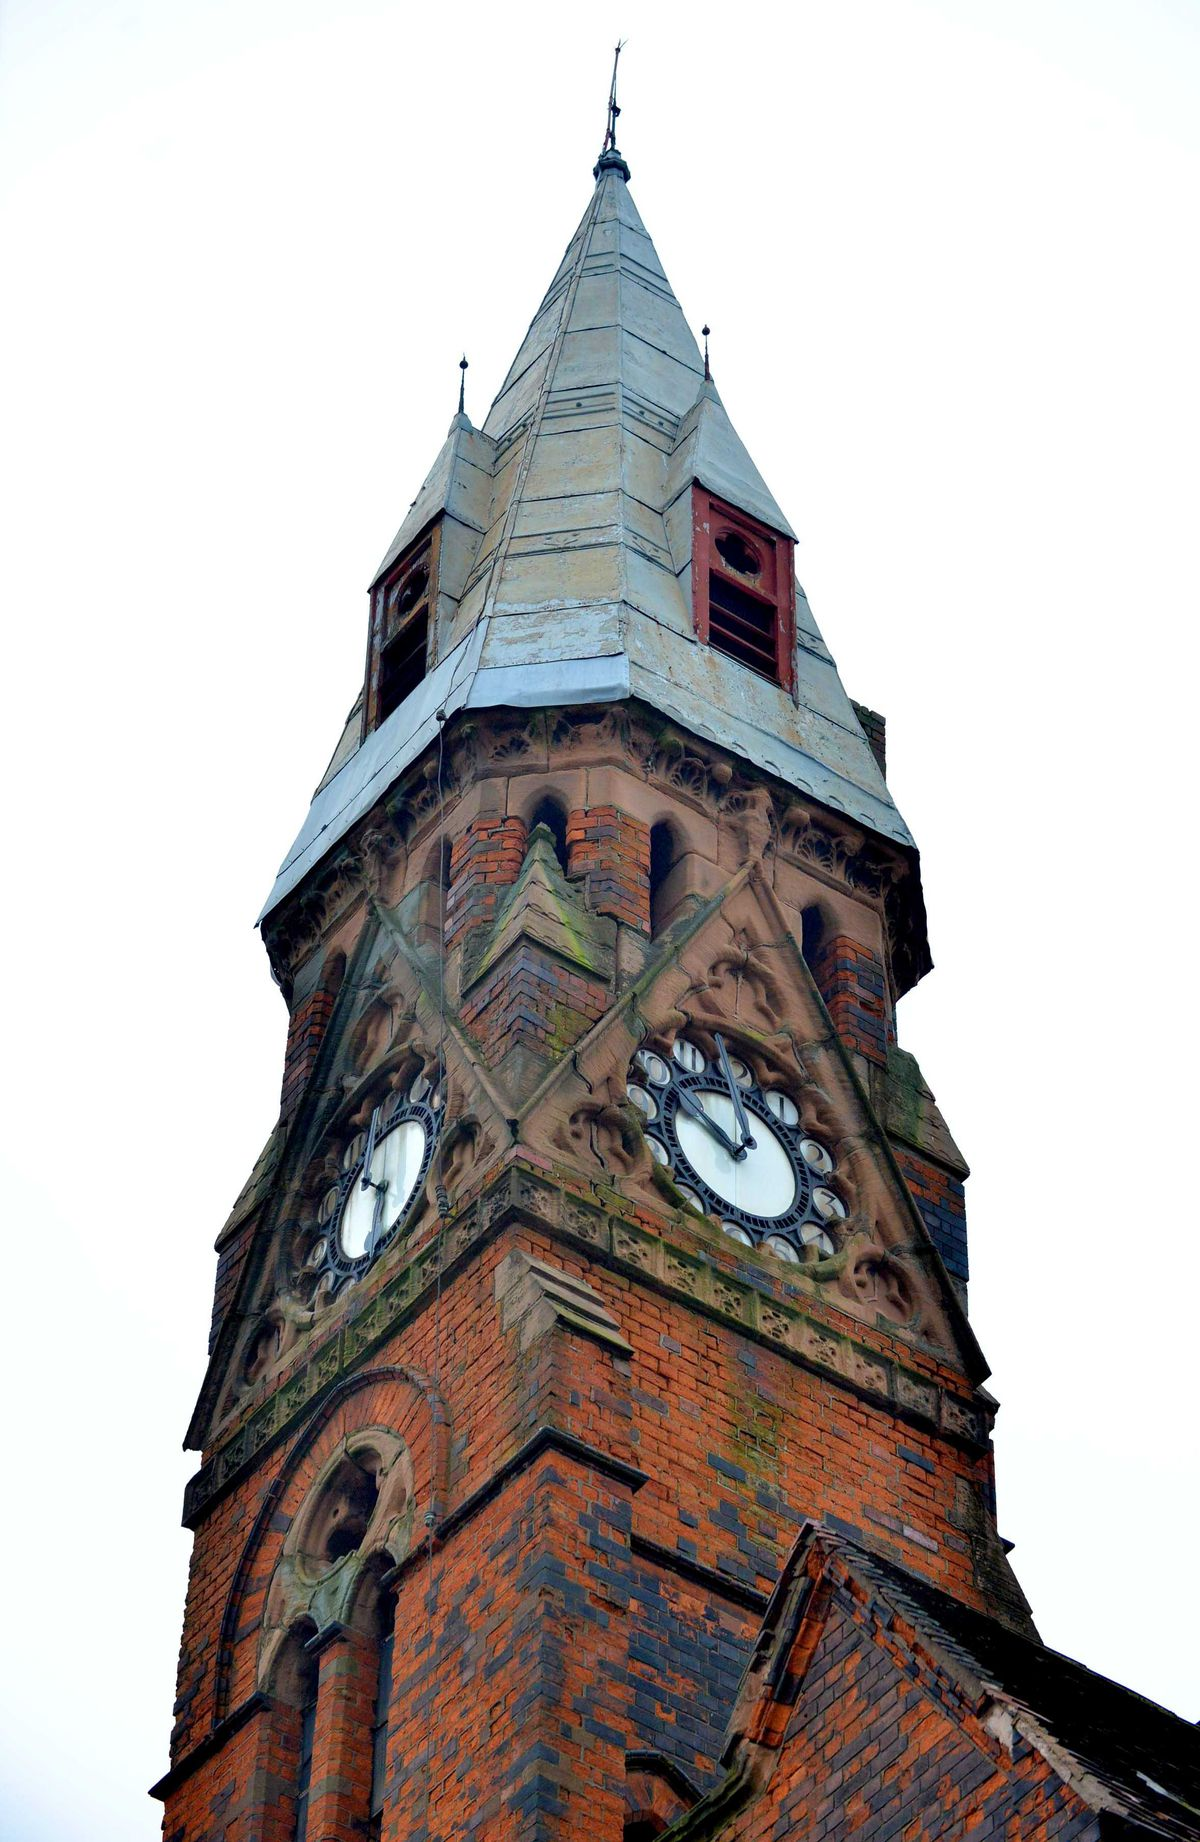 Drugs were growing in every part of the building, including the clock tower